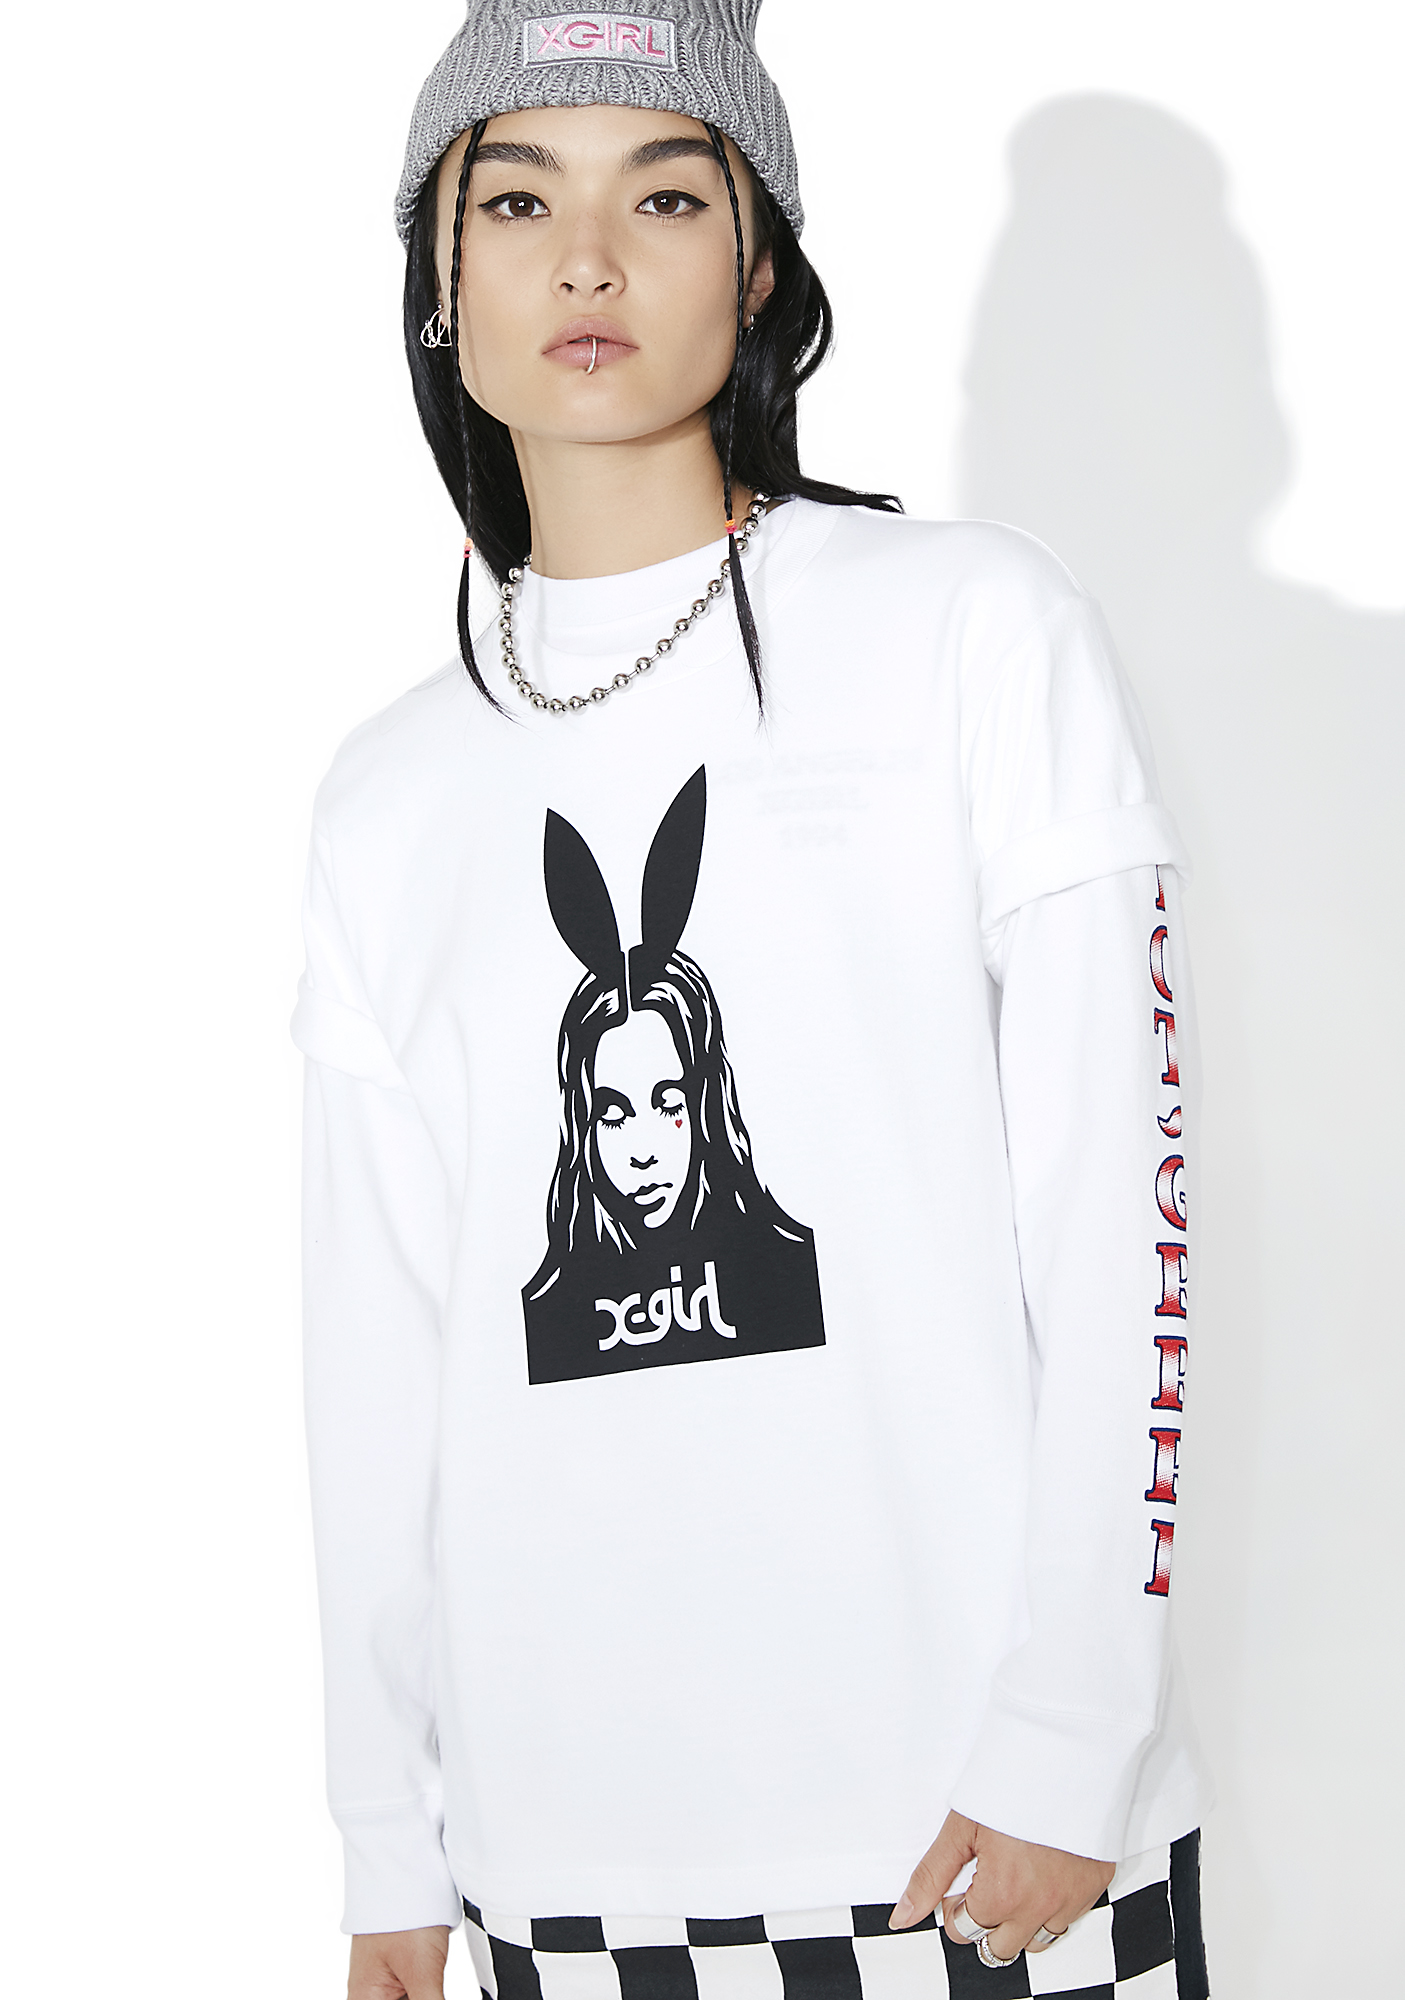 x-Girl Bunny Face Short Sleeve Tee